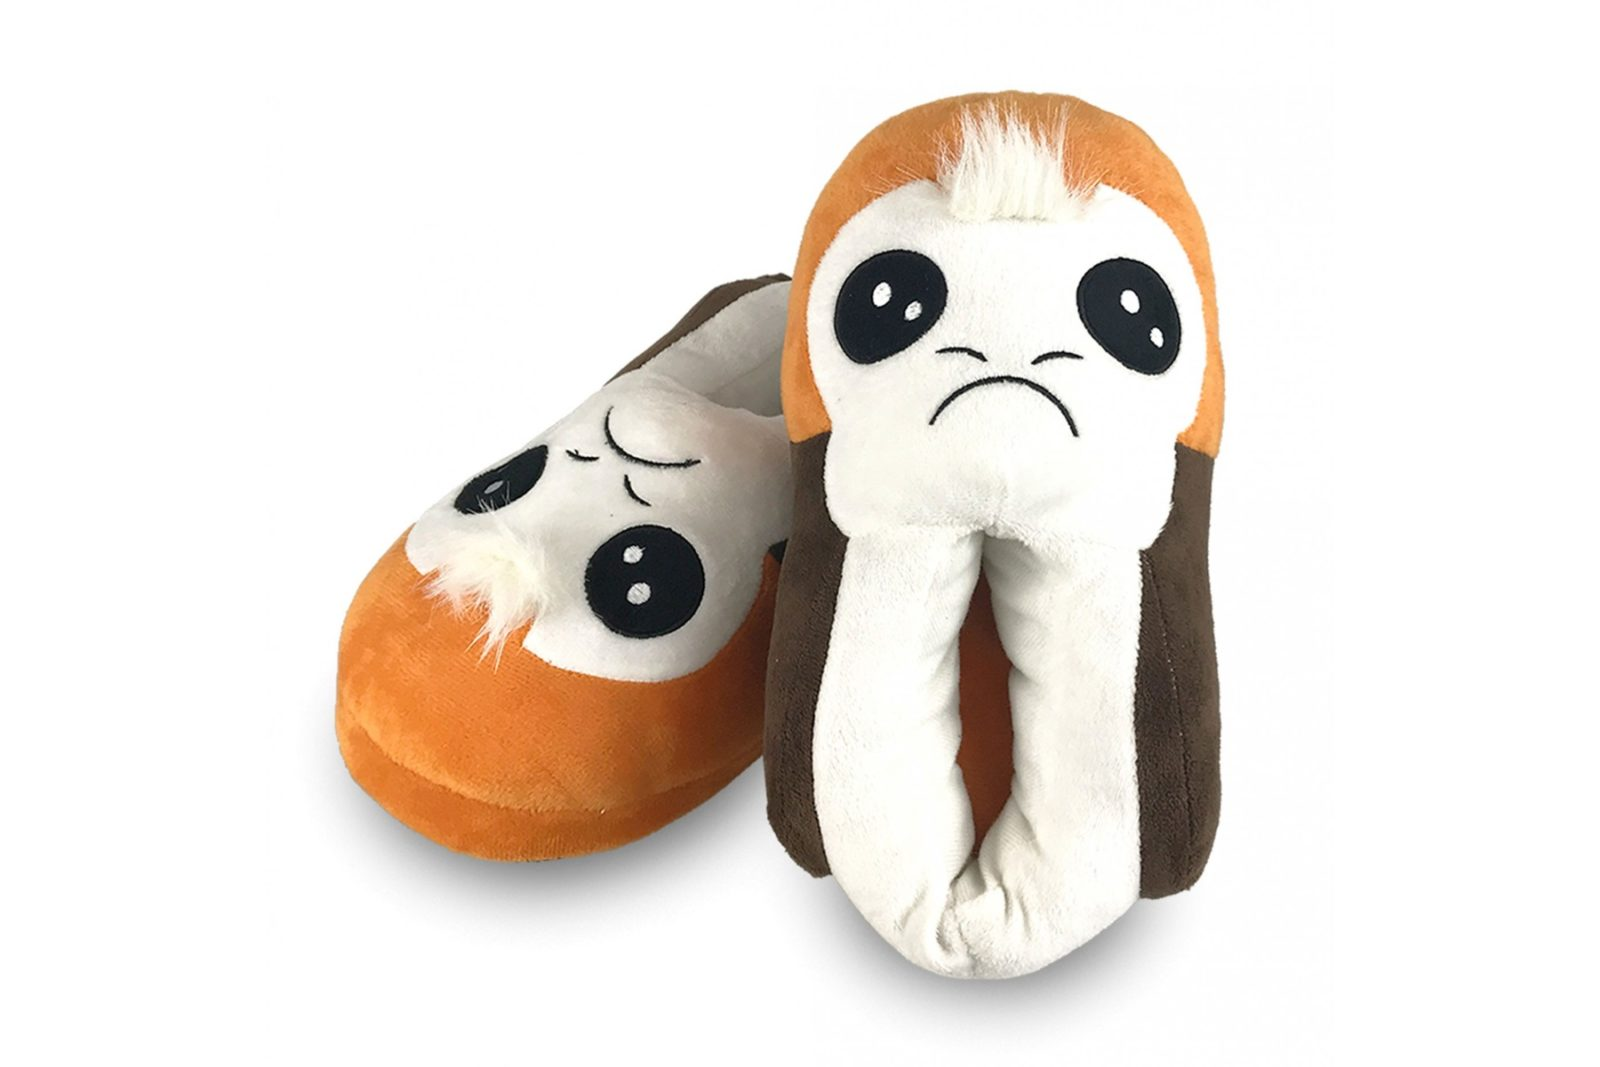 Women's Star Wars Plush Porg Slippers